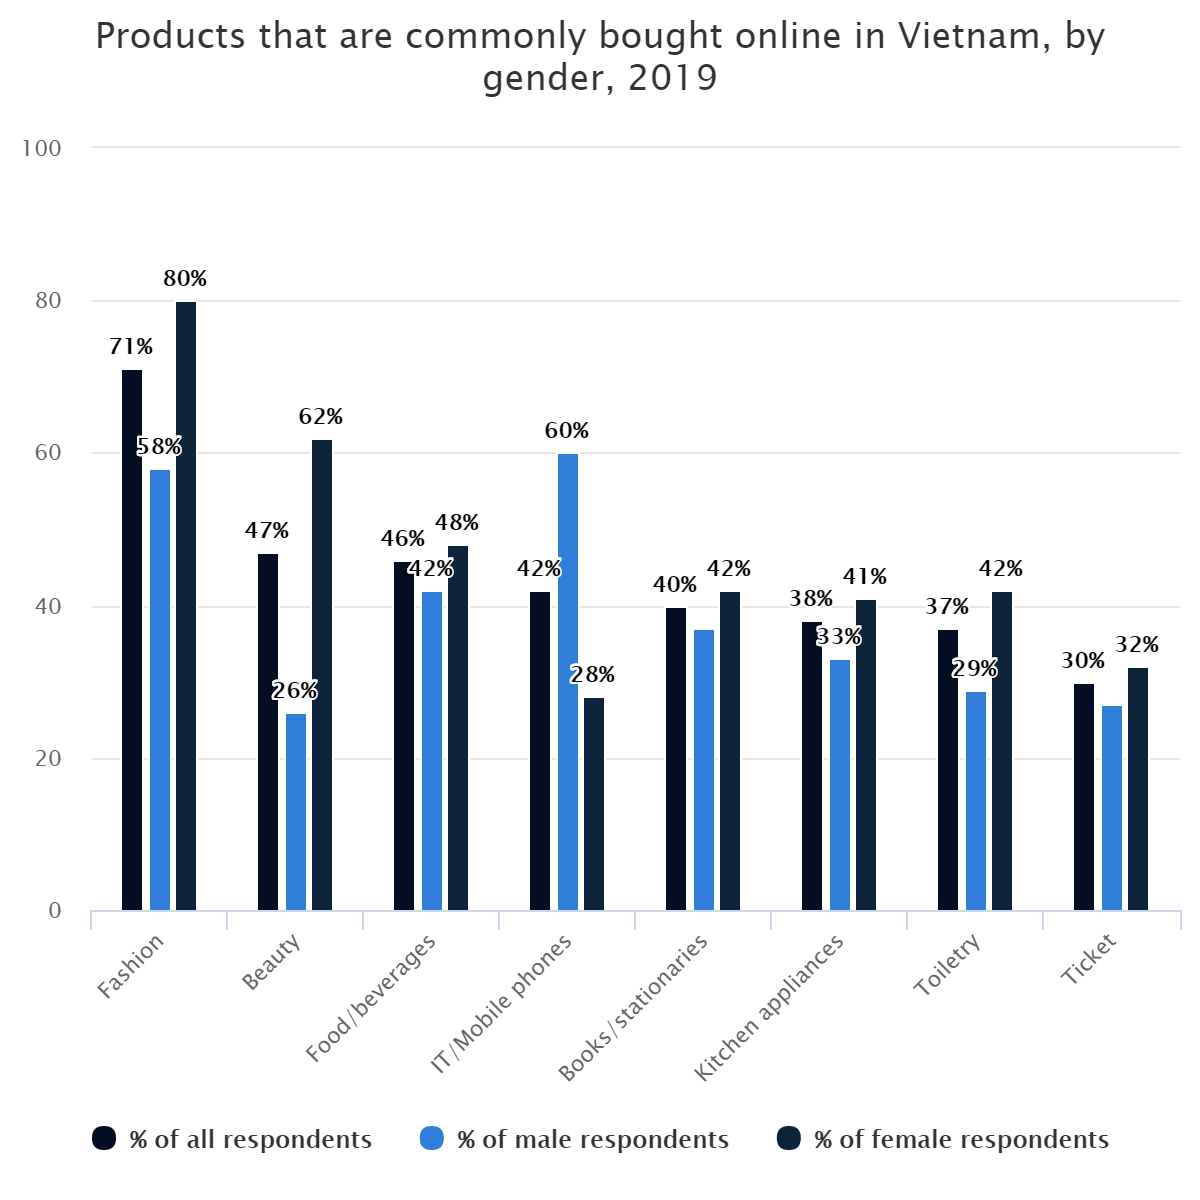 Products that are commonly bought online in Vietnam, by gender, 2019